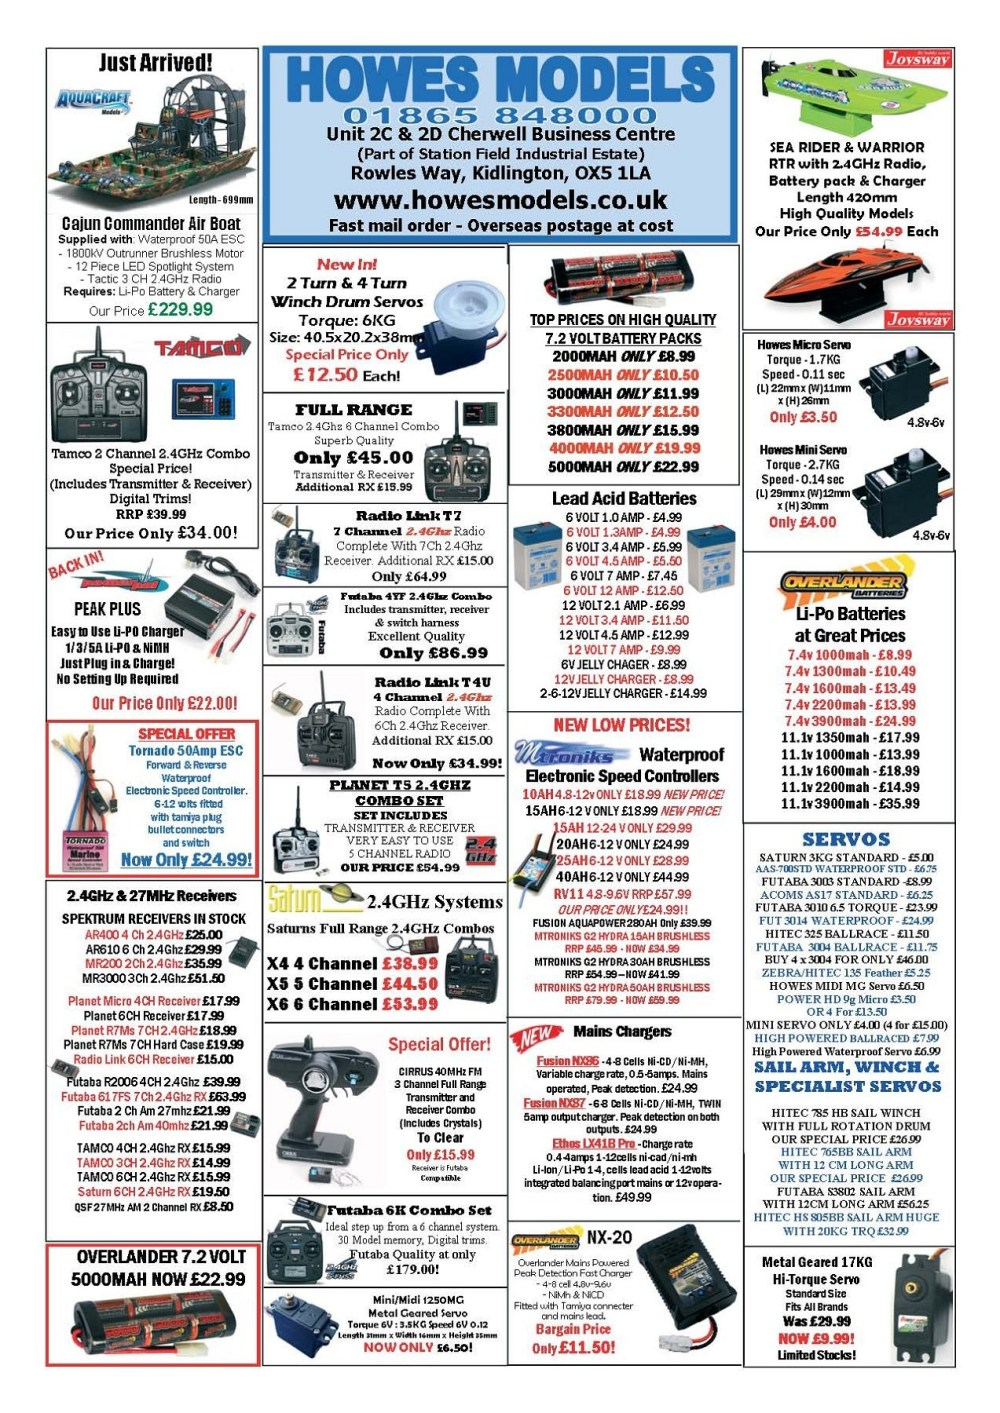 medium resolution of marine modelling january 2016 pages 1 50 text version fliphtml5 deben wiring loom to 12v battery glasgow field sports